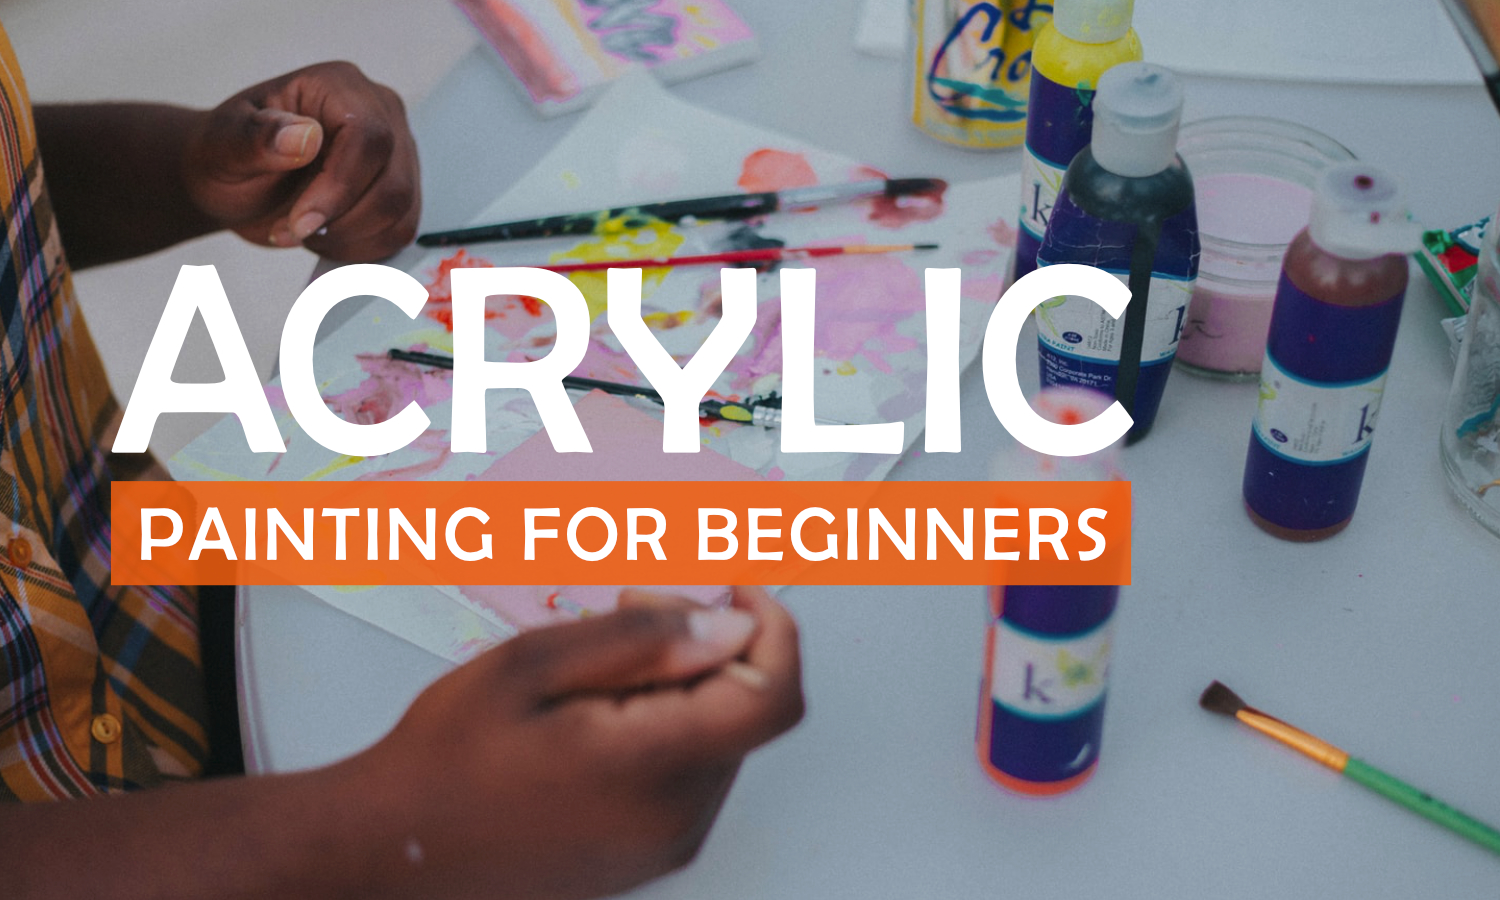 Acrylic Painting - Beginner's Course